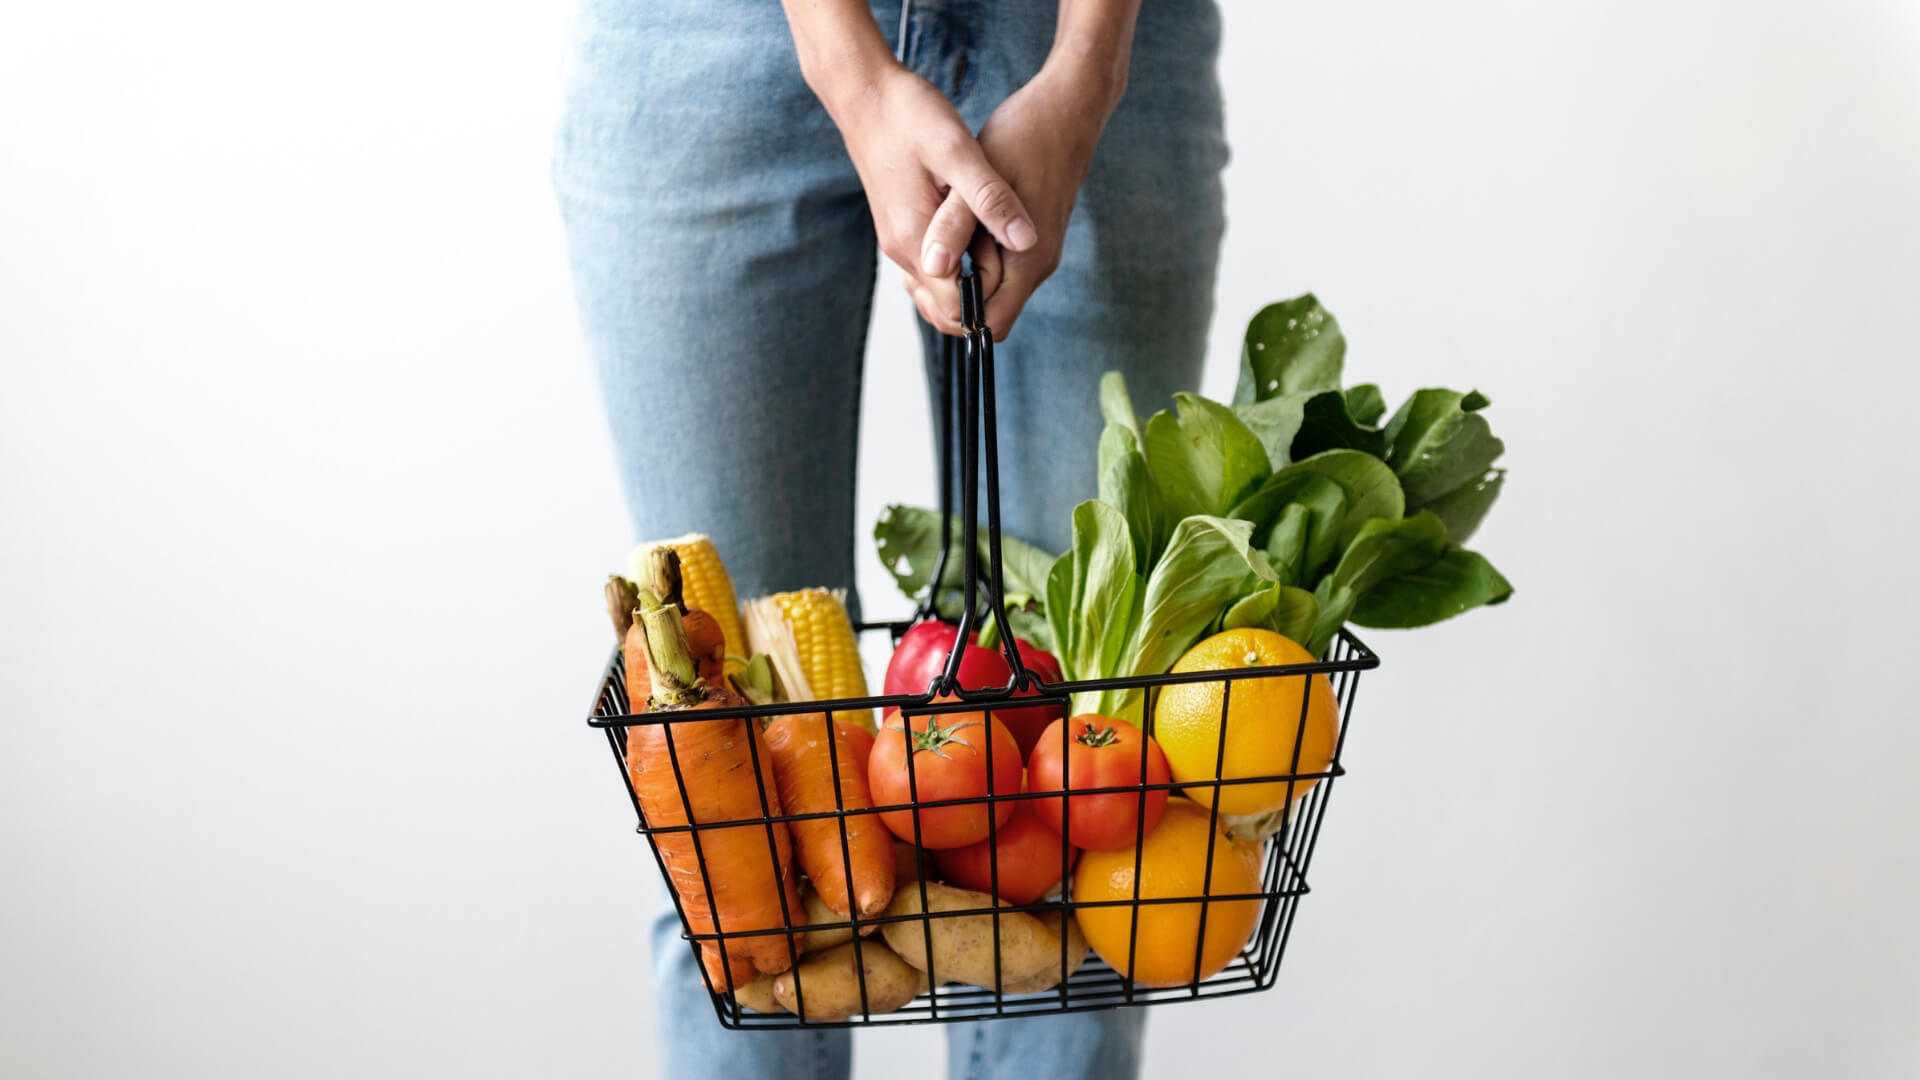 8 Easy Ways to Get Healthy for Less in 2015